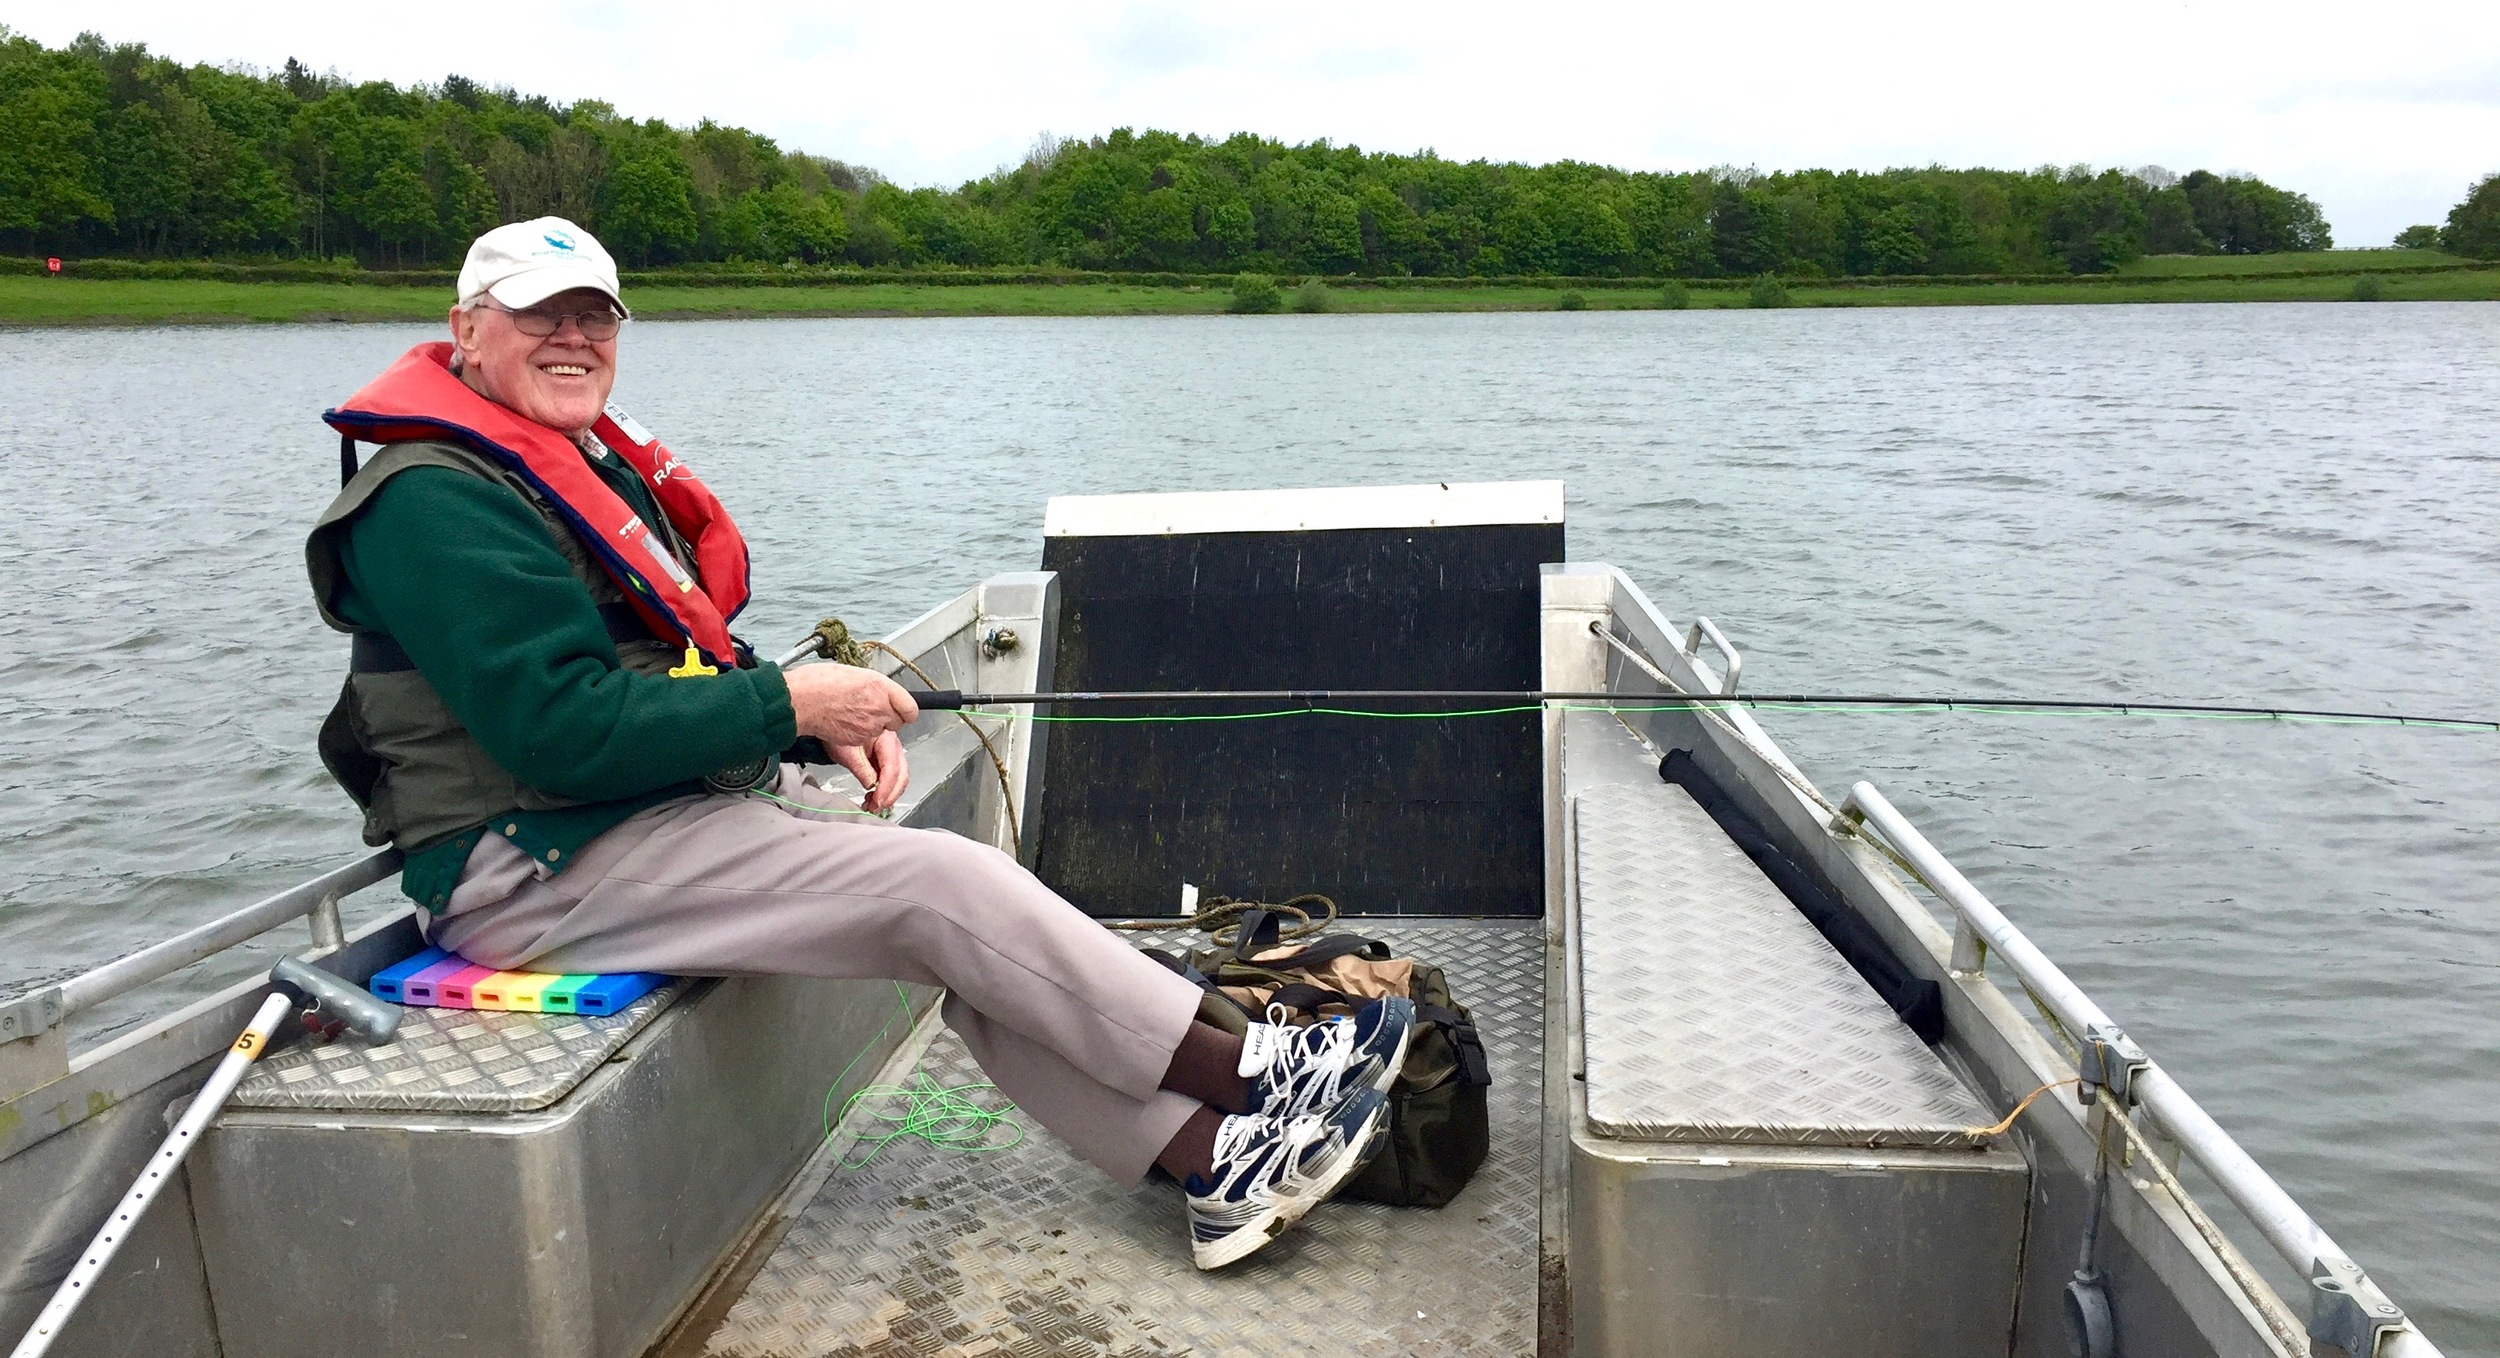 The author's father, Allan Sharman, enjoying the extra space in the wheelyboat at South East Water's Arlington reservoir in Sussex.